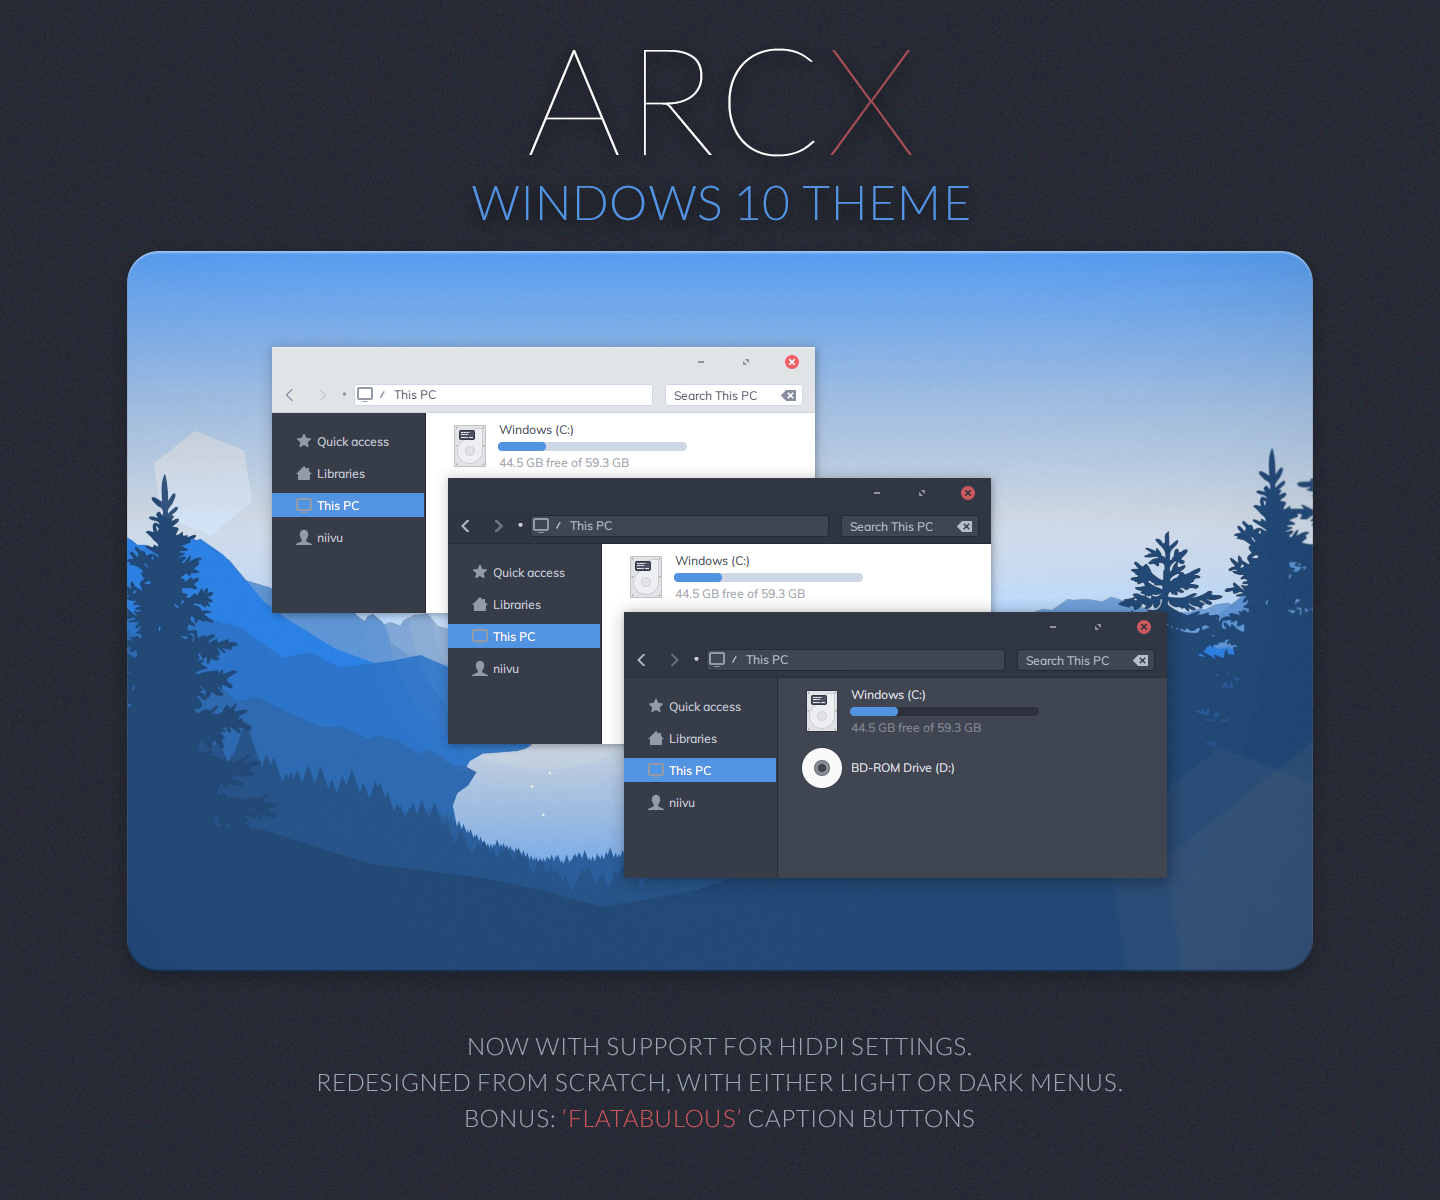 ARC X Windows 10 Theme by niivu on DeviantArt